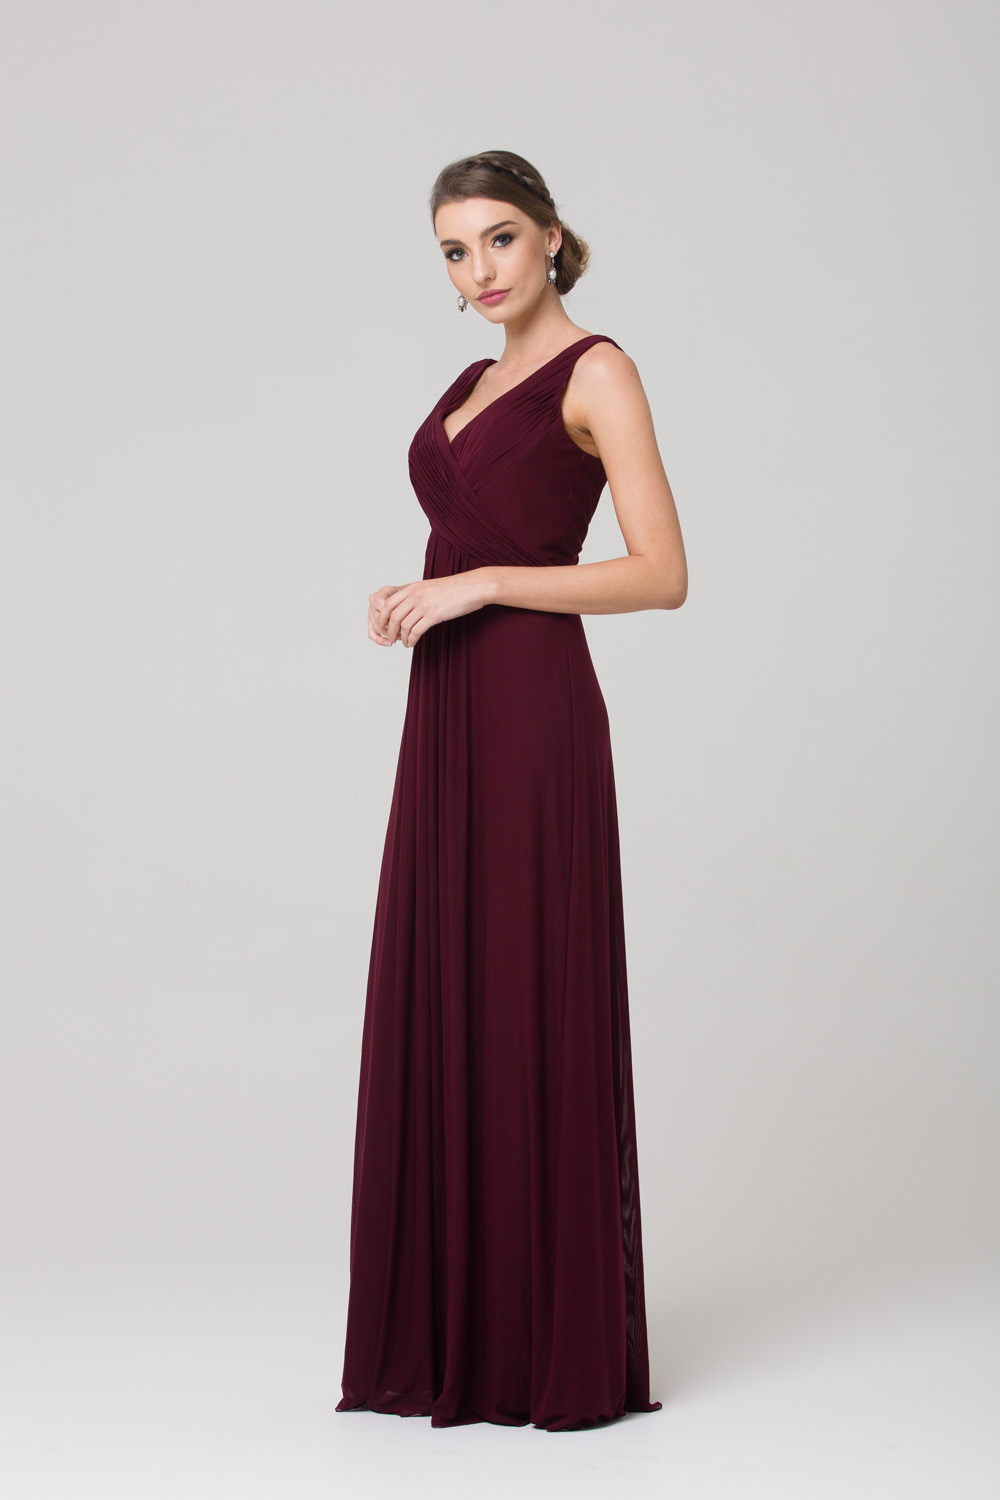 TO74 Amber Bridesmaids Dress WINE SIDE